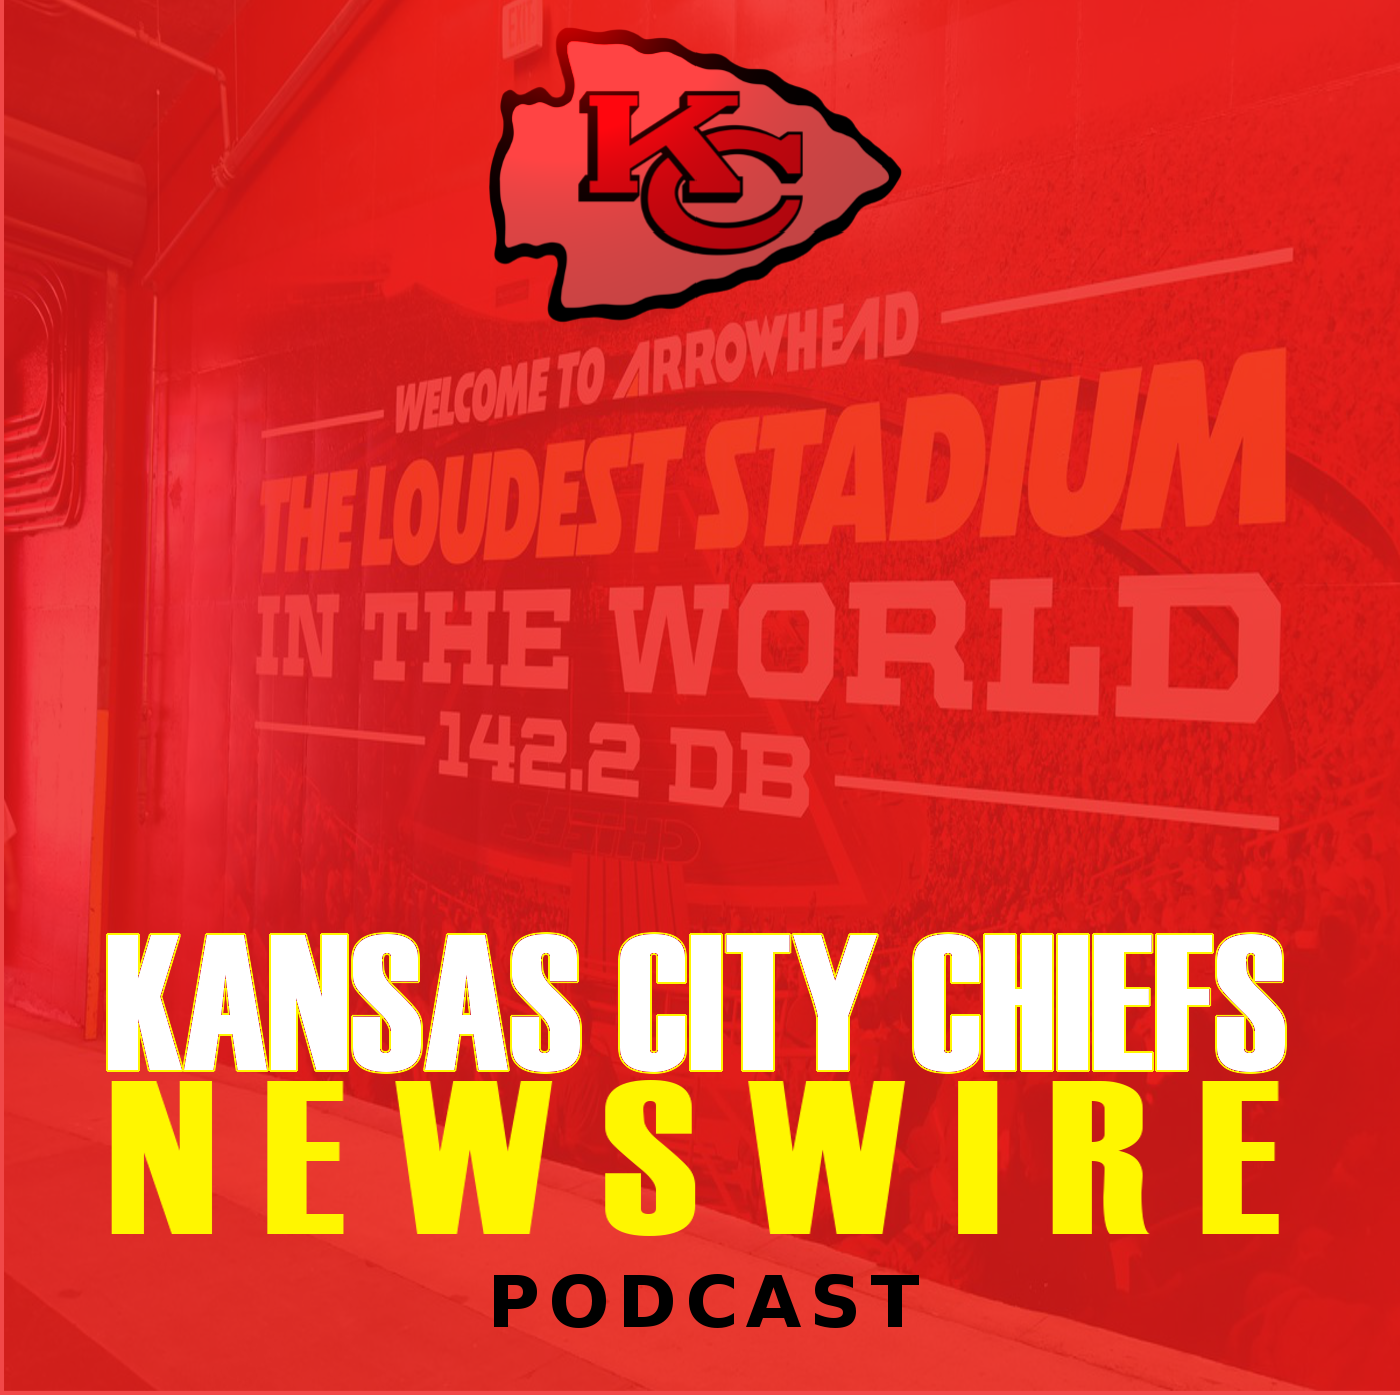 Kansas City Chiefs Newswire Podcast For The Kingdom Listen Via Stitcher For Podcasts,Design Your Own Apron